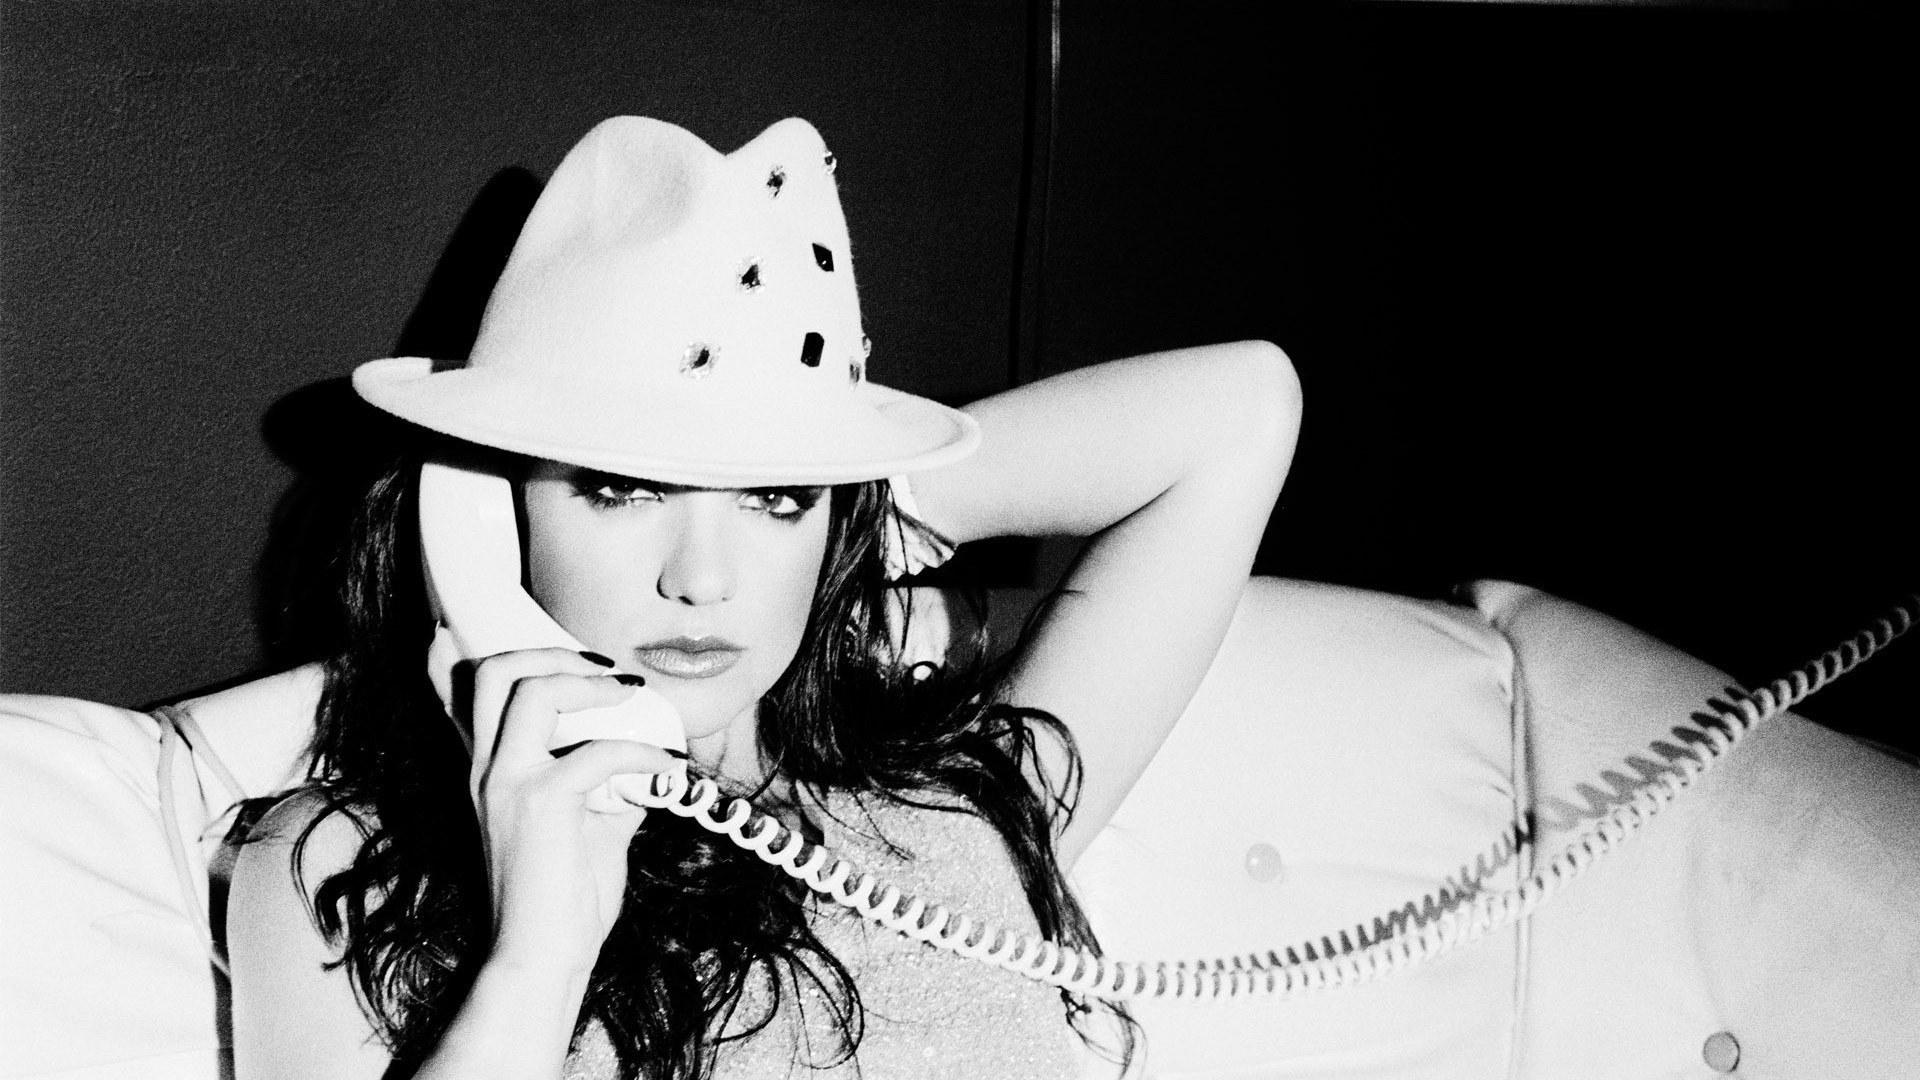 1920x1080  Wallpaper britney spears, phone, look, hat, singer, black and  white